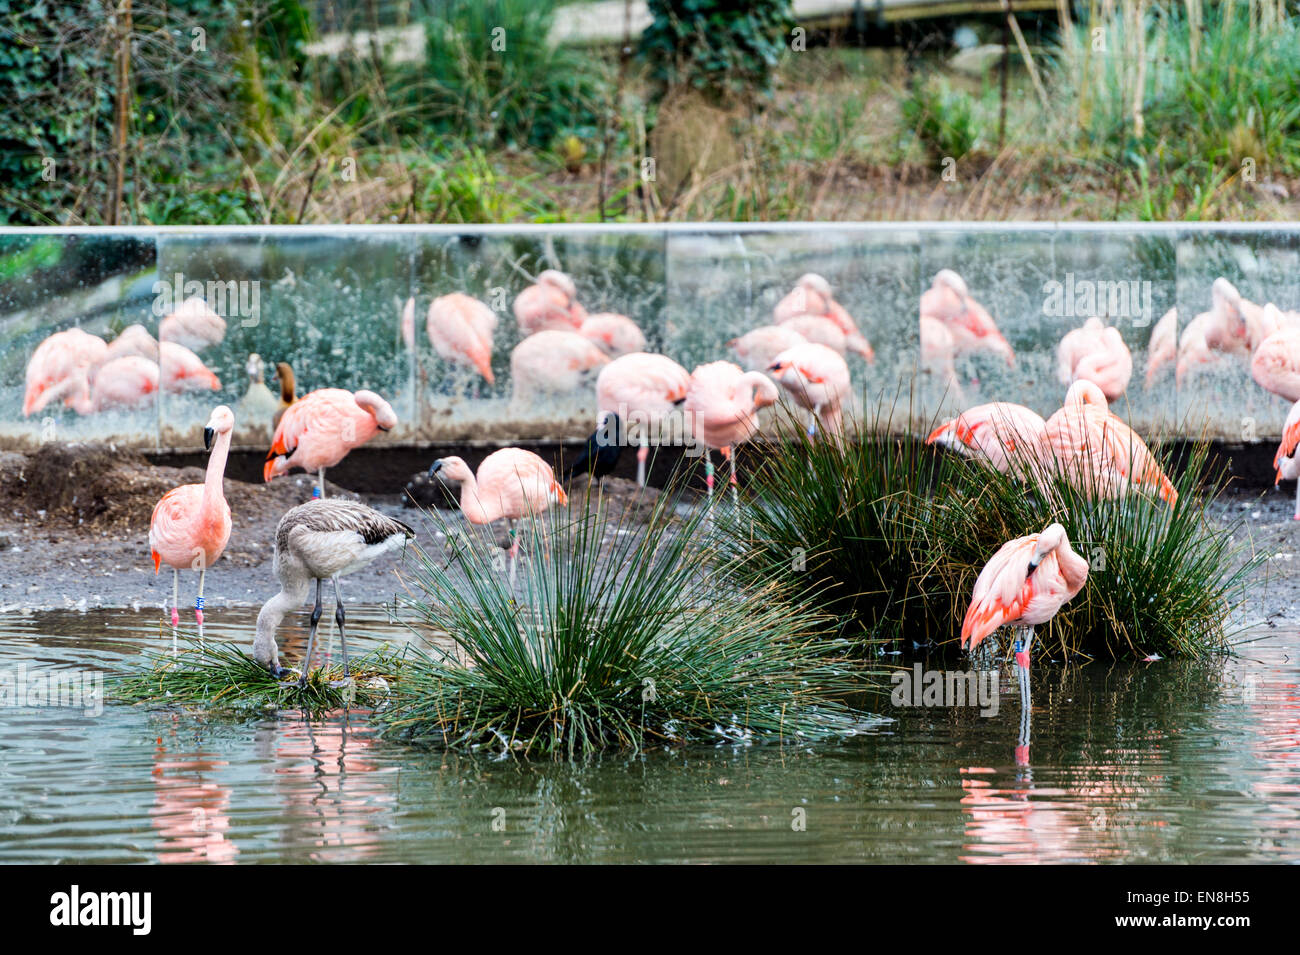 Pink flamingos in the Natura Artis Magistra zoo in central Amsterdam, the Netherlands - Stock Image